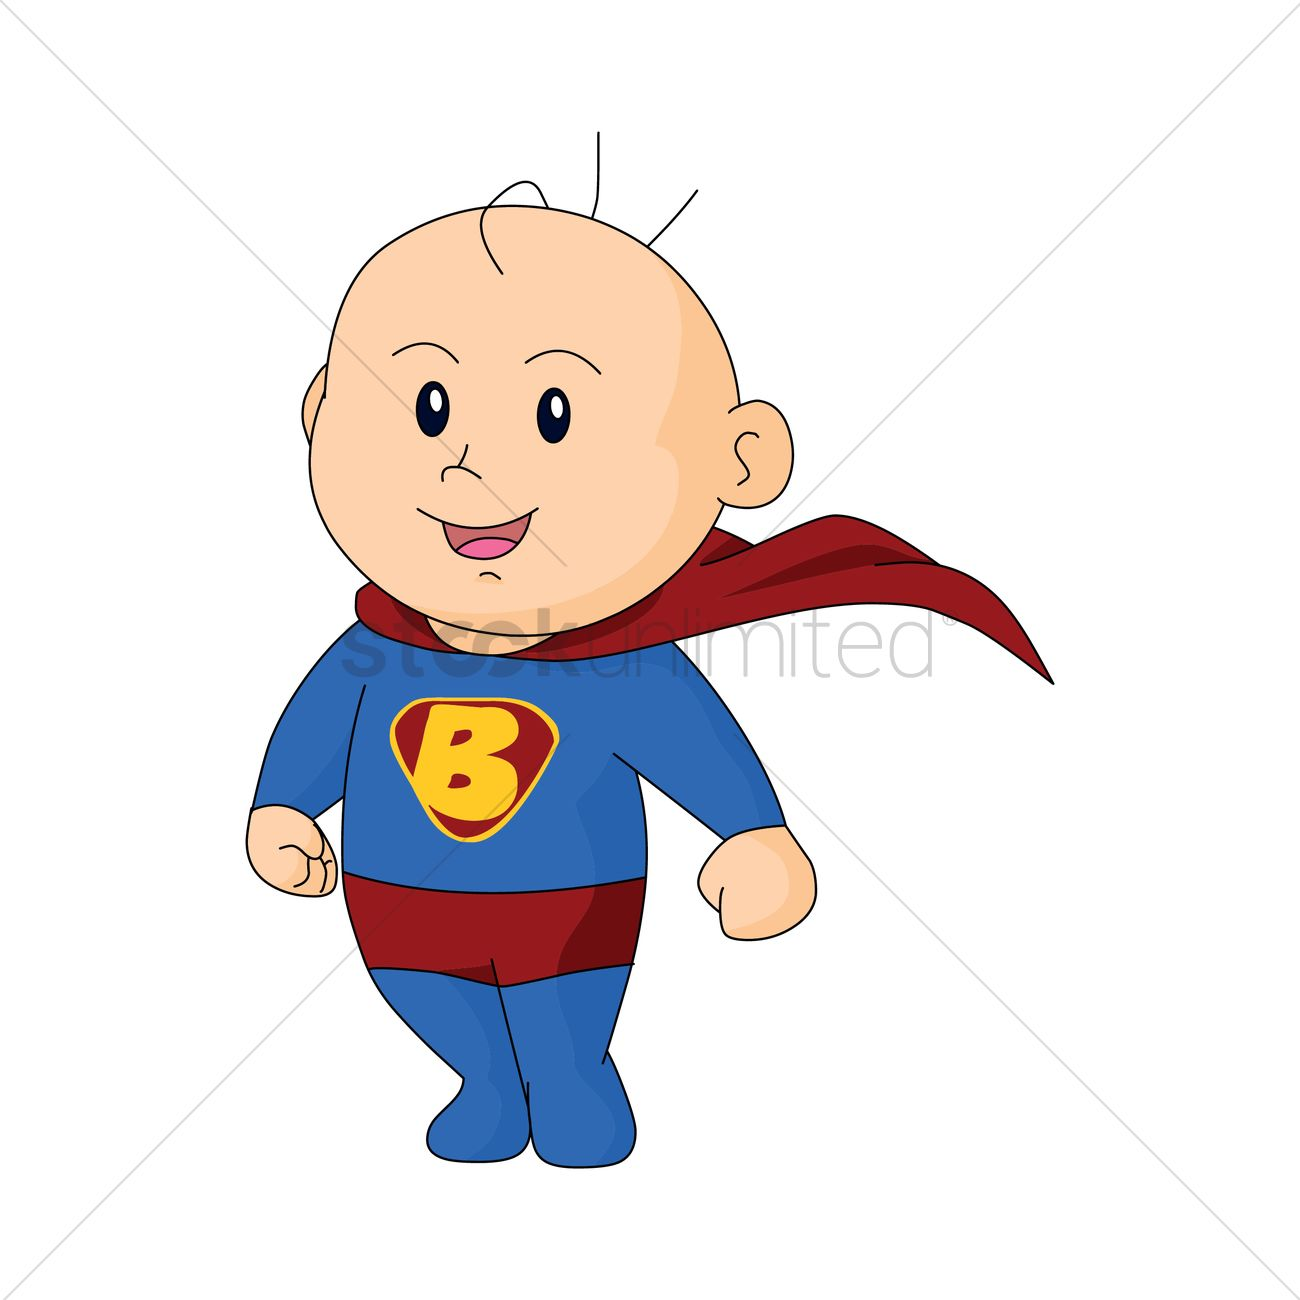 Baby superman clipart royalty free library Free Baby in superman dress Vector Image - 1273504 | StockUnlimited royalty free library